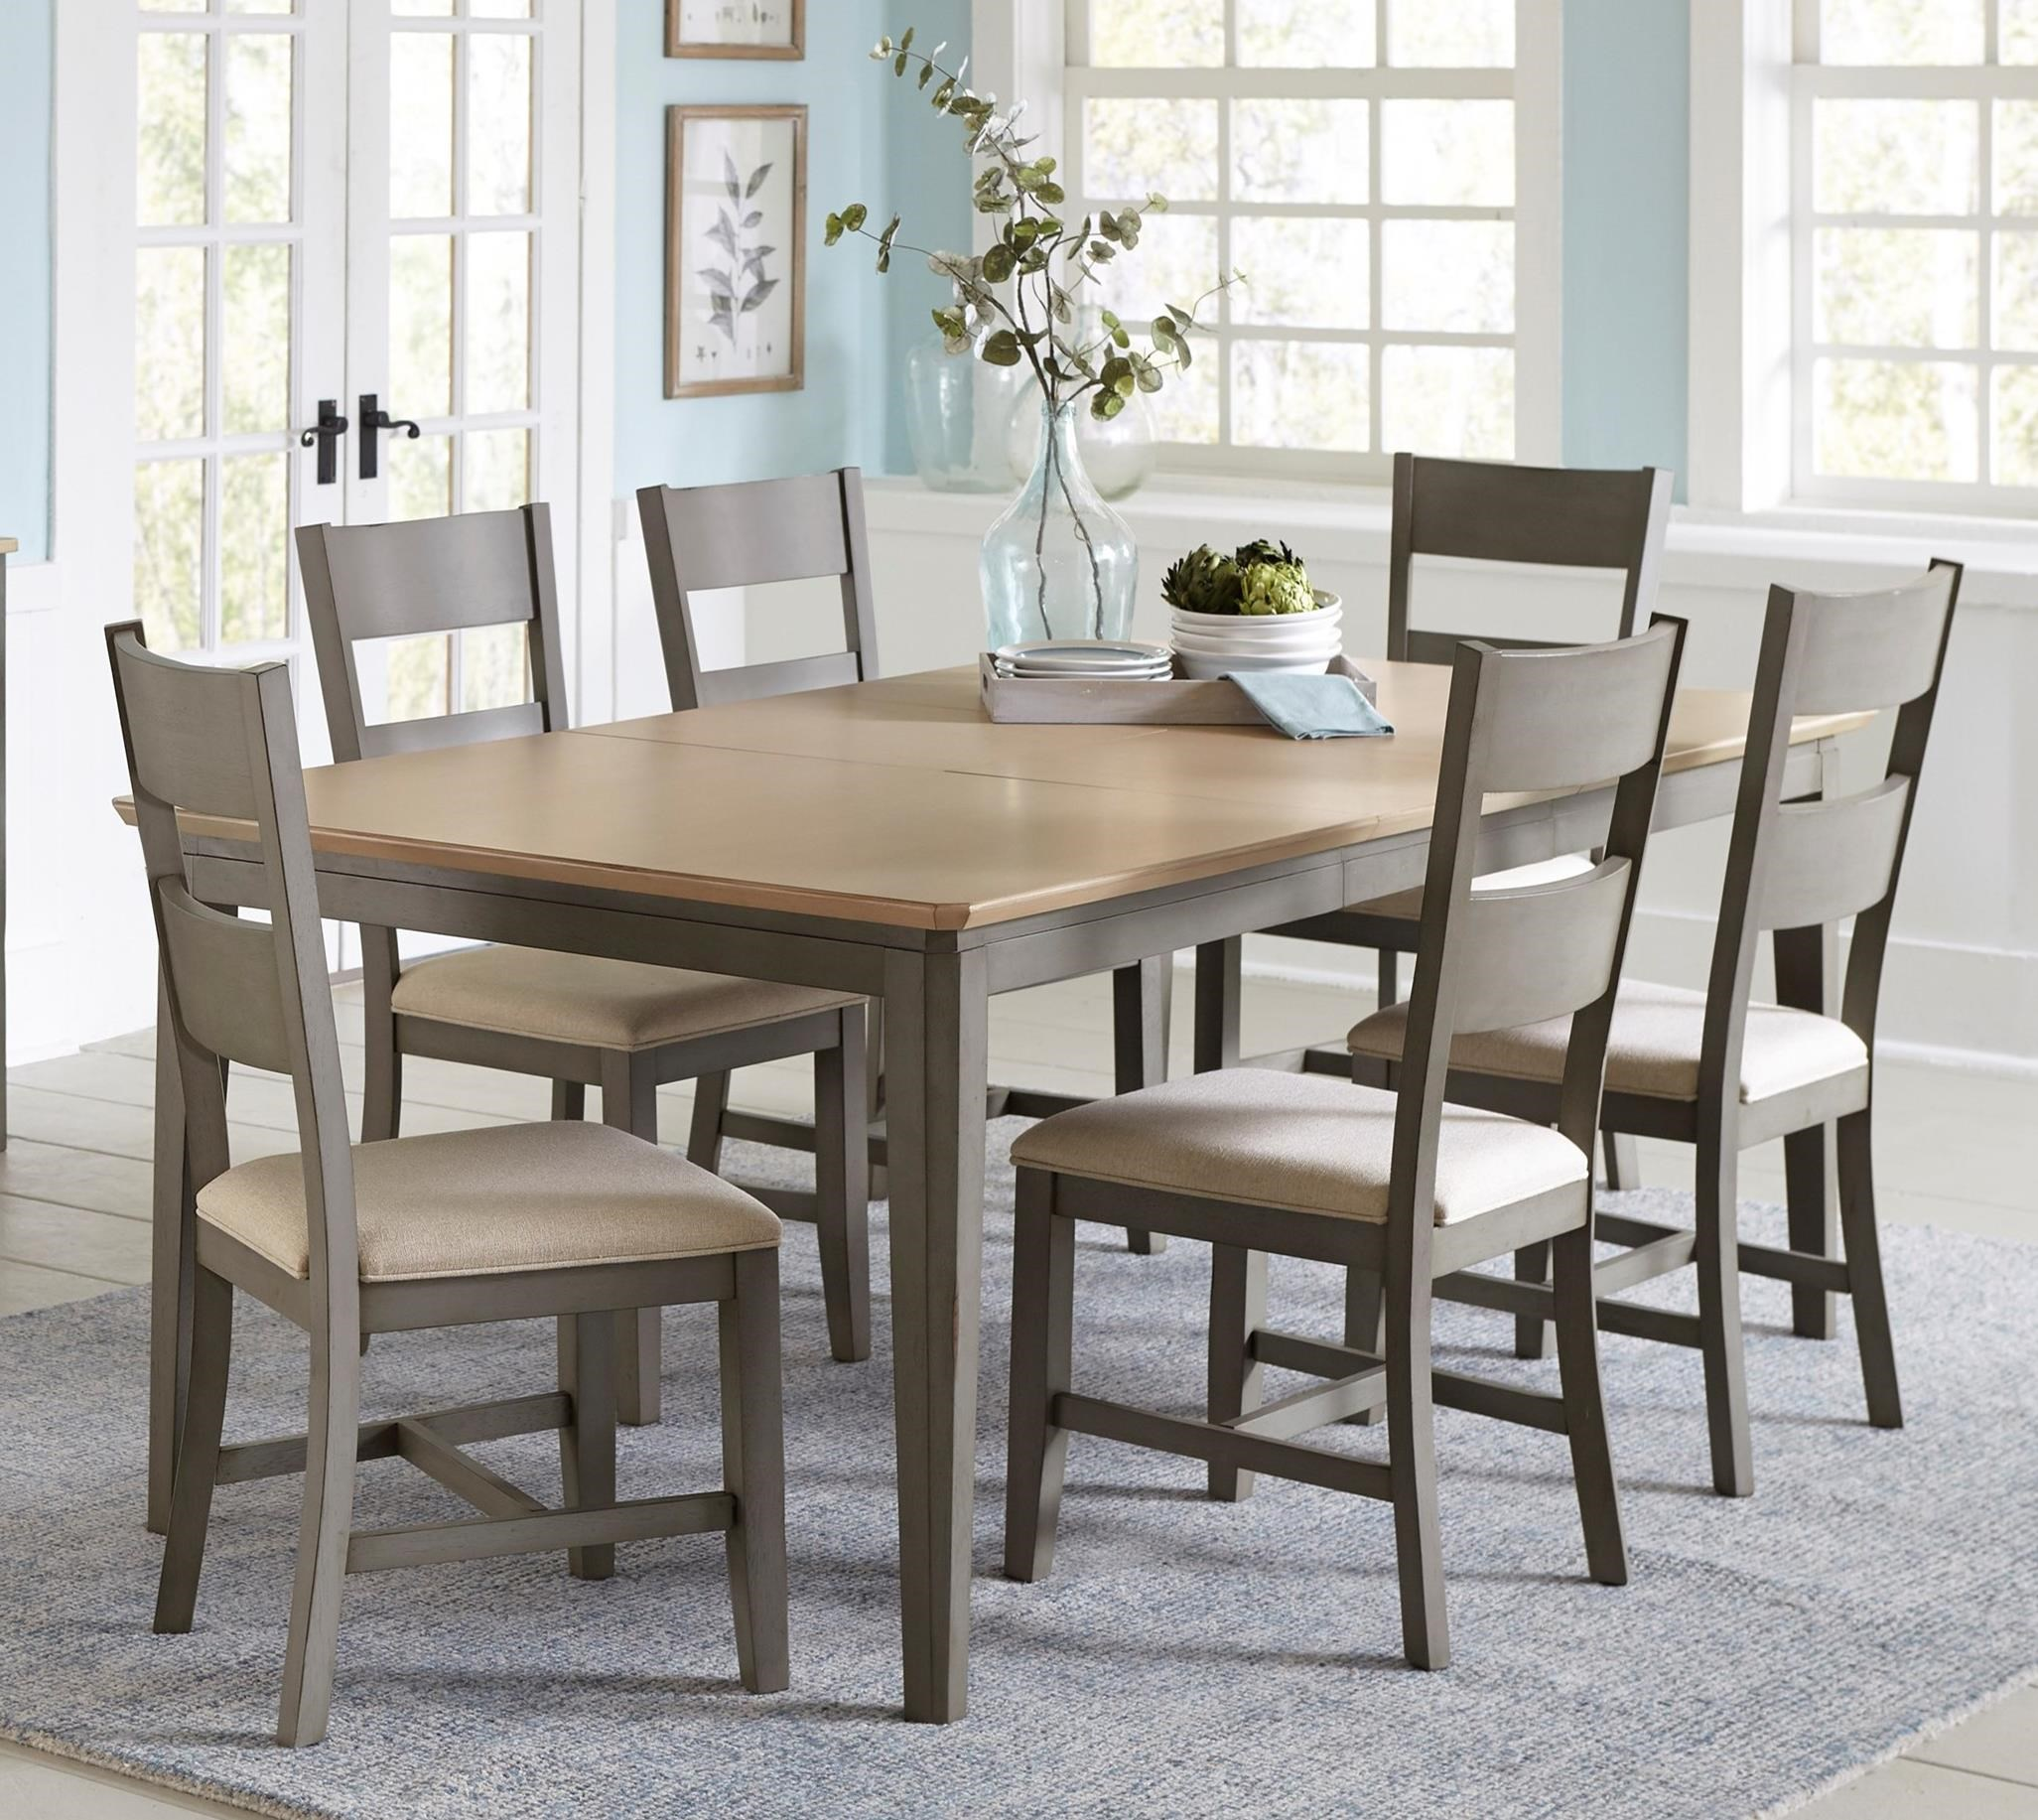 Progressive Furniture Toronto Transitional 9 Piece Table and Chair ...